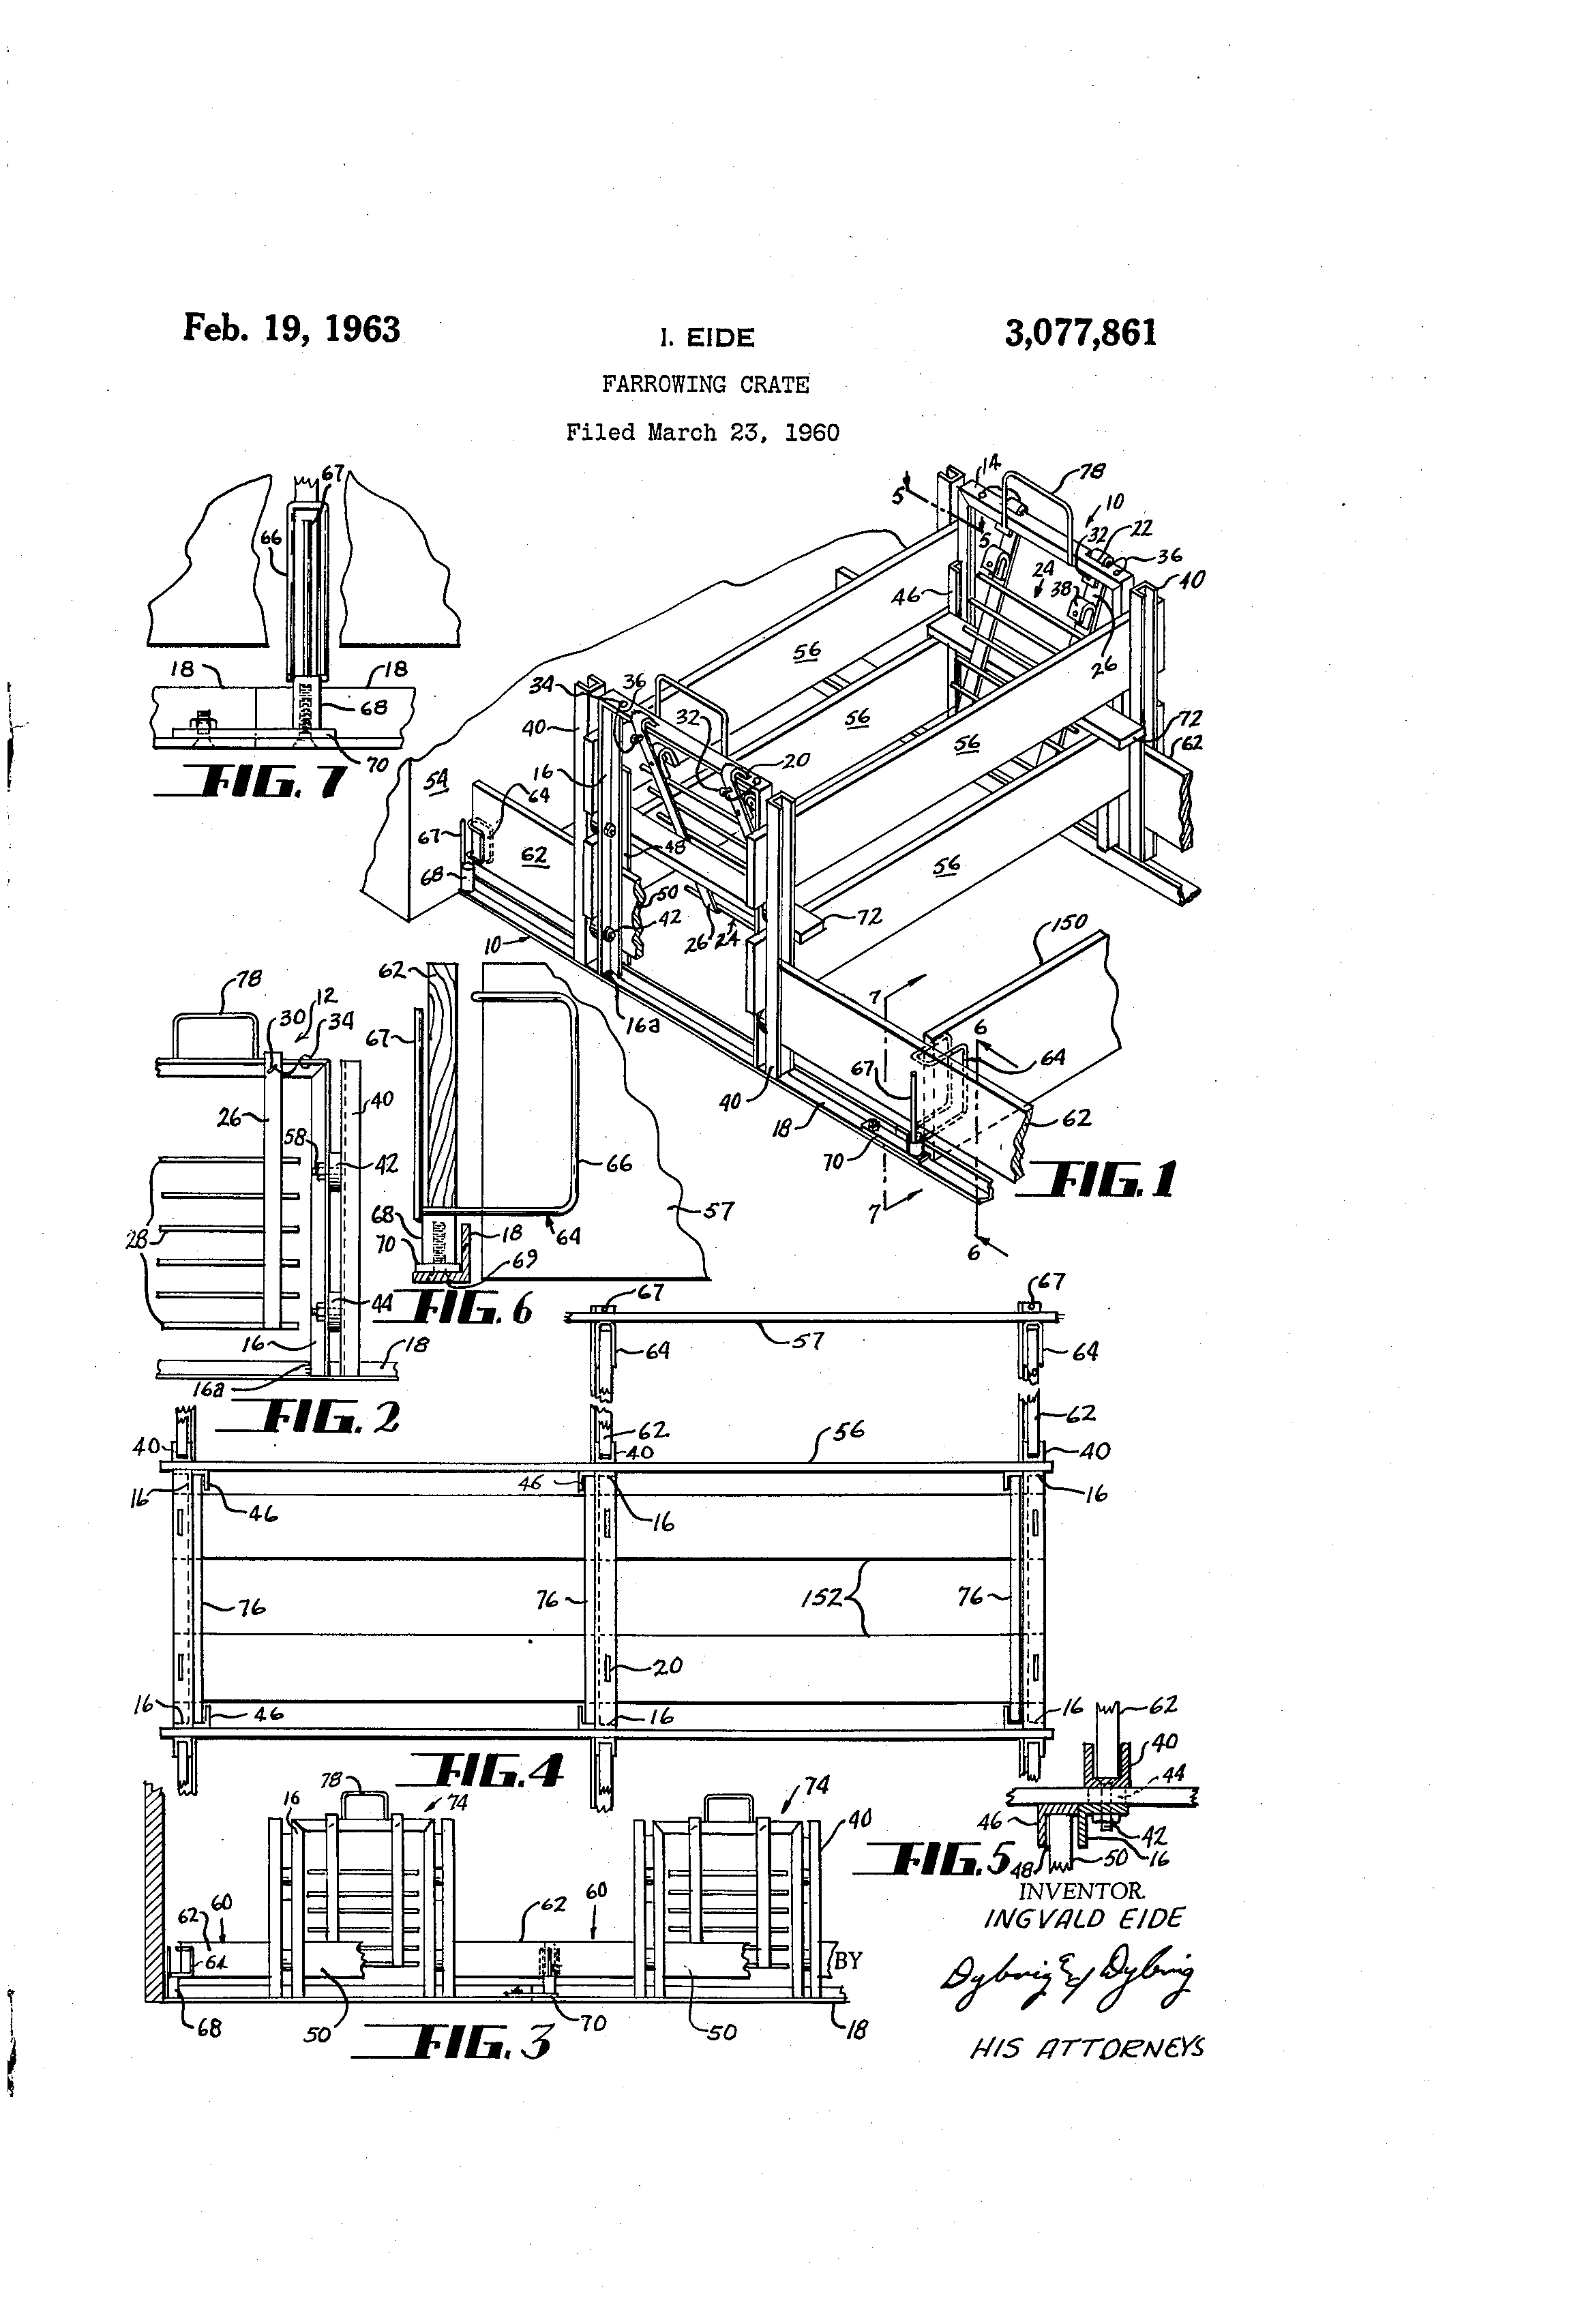 patent us3077861 - farrowing crate